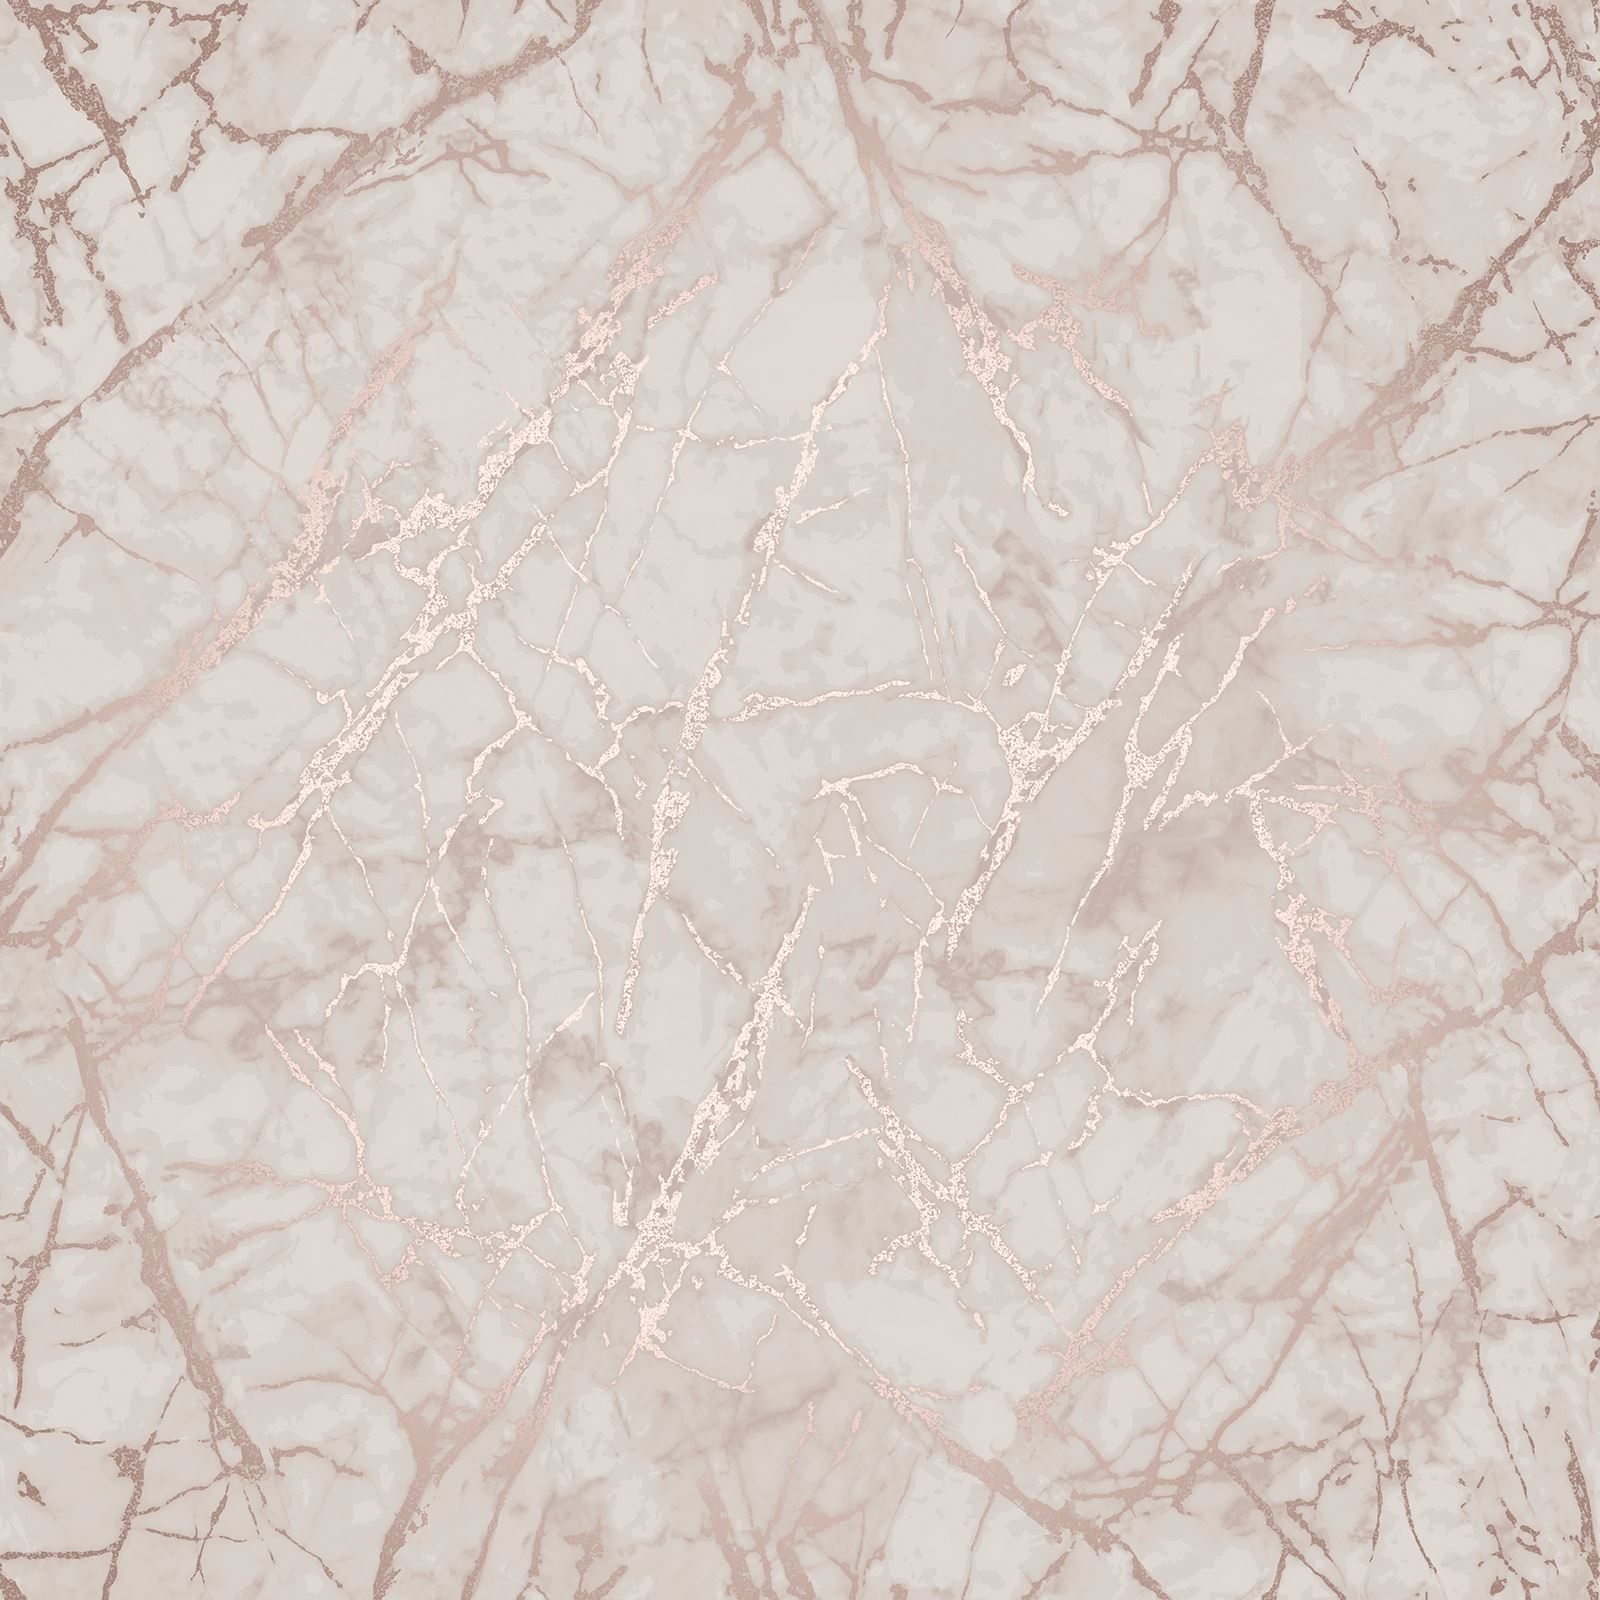 Great Wallpaper High Resolution Marble - 391989953037_images  Best Photo Reference_572699.jpeg